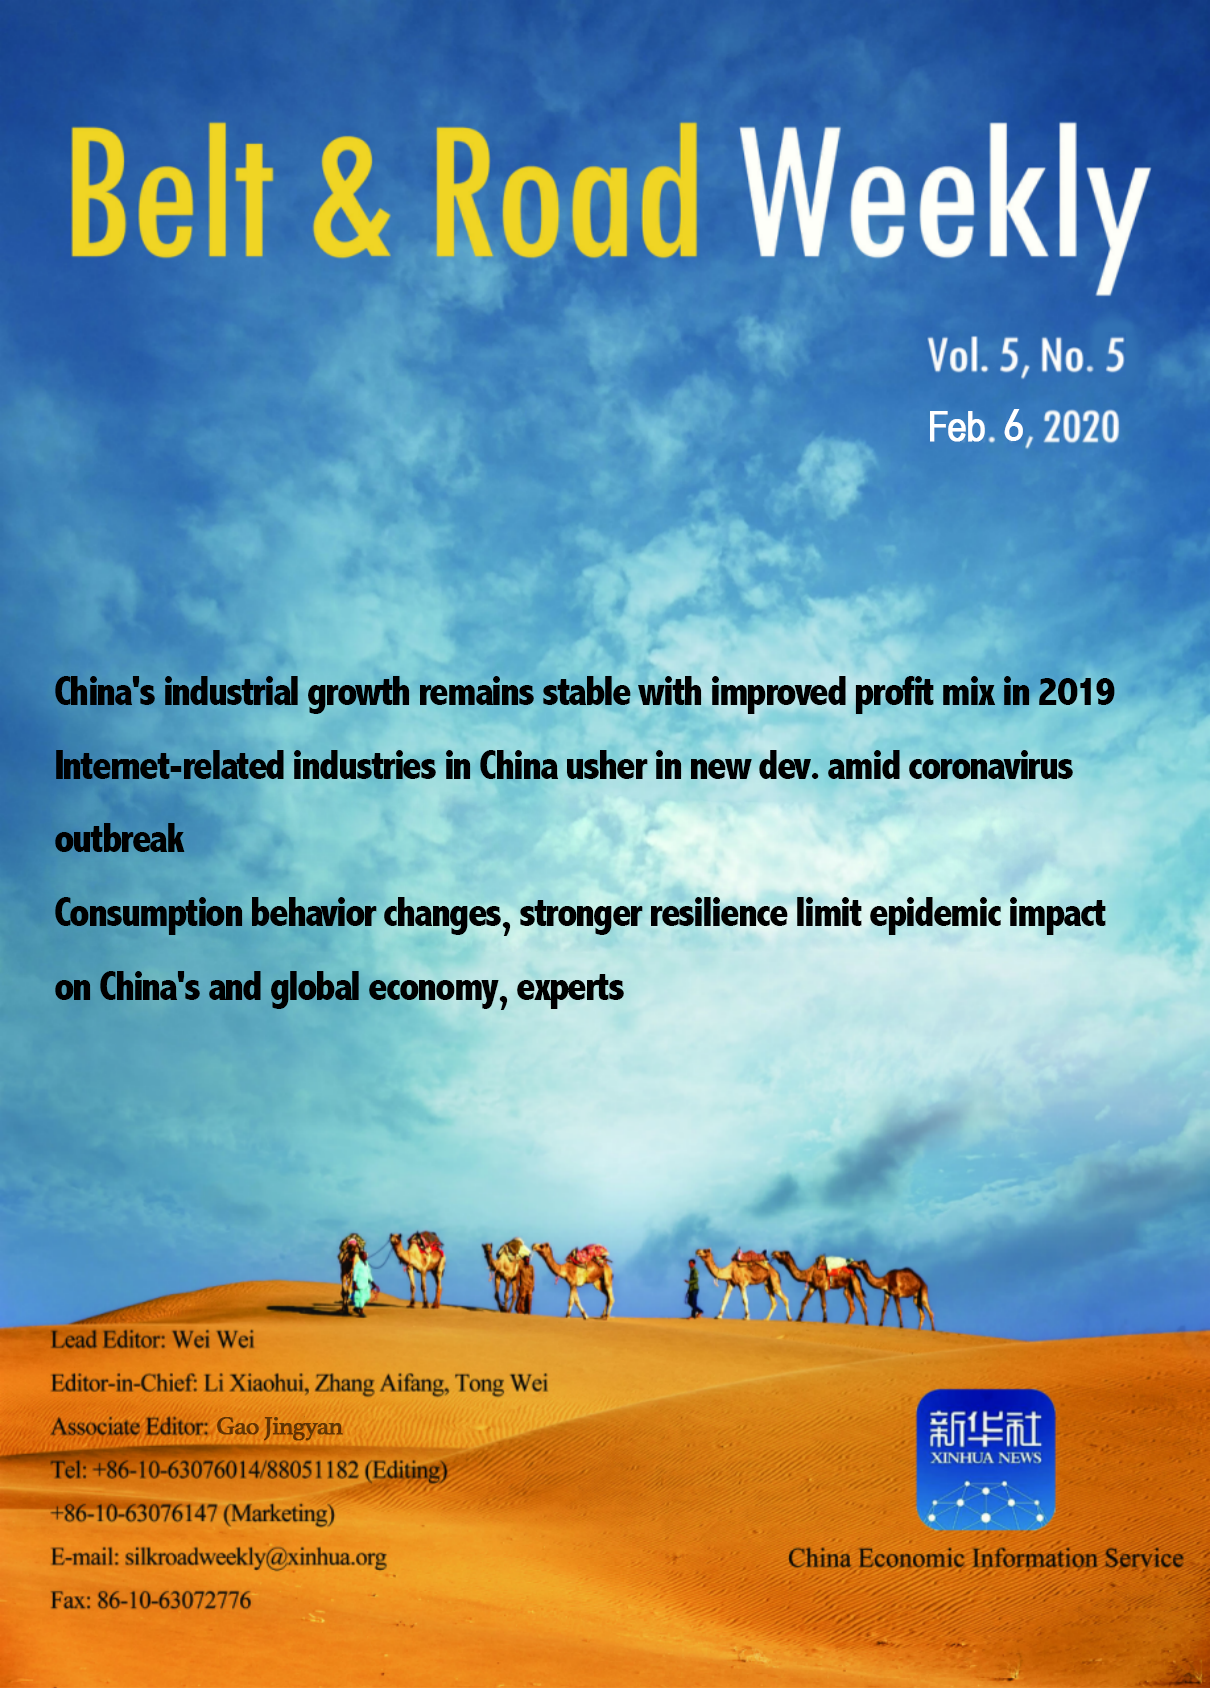 Belt & Road Weekly Vol. 5 No. 5